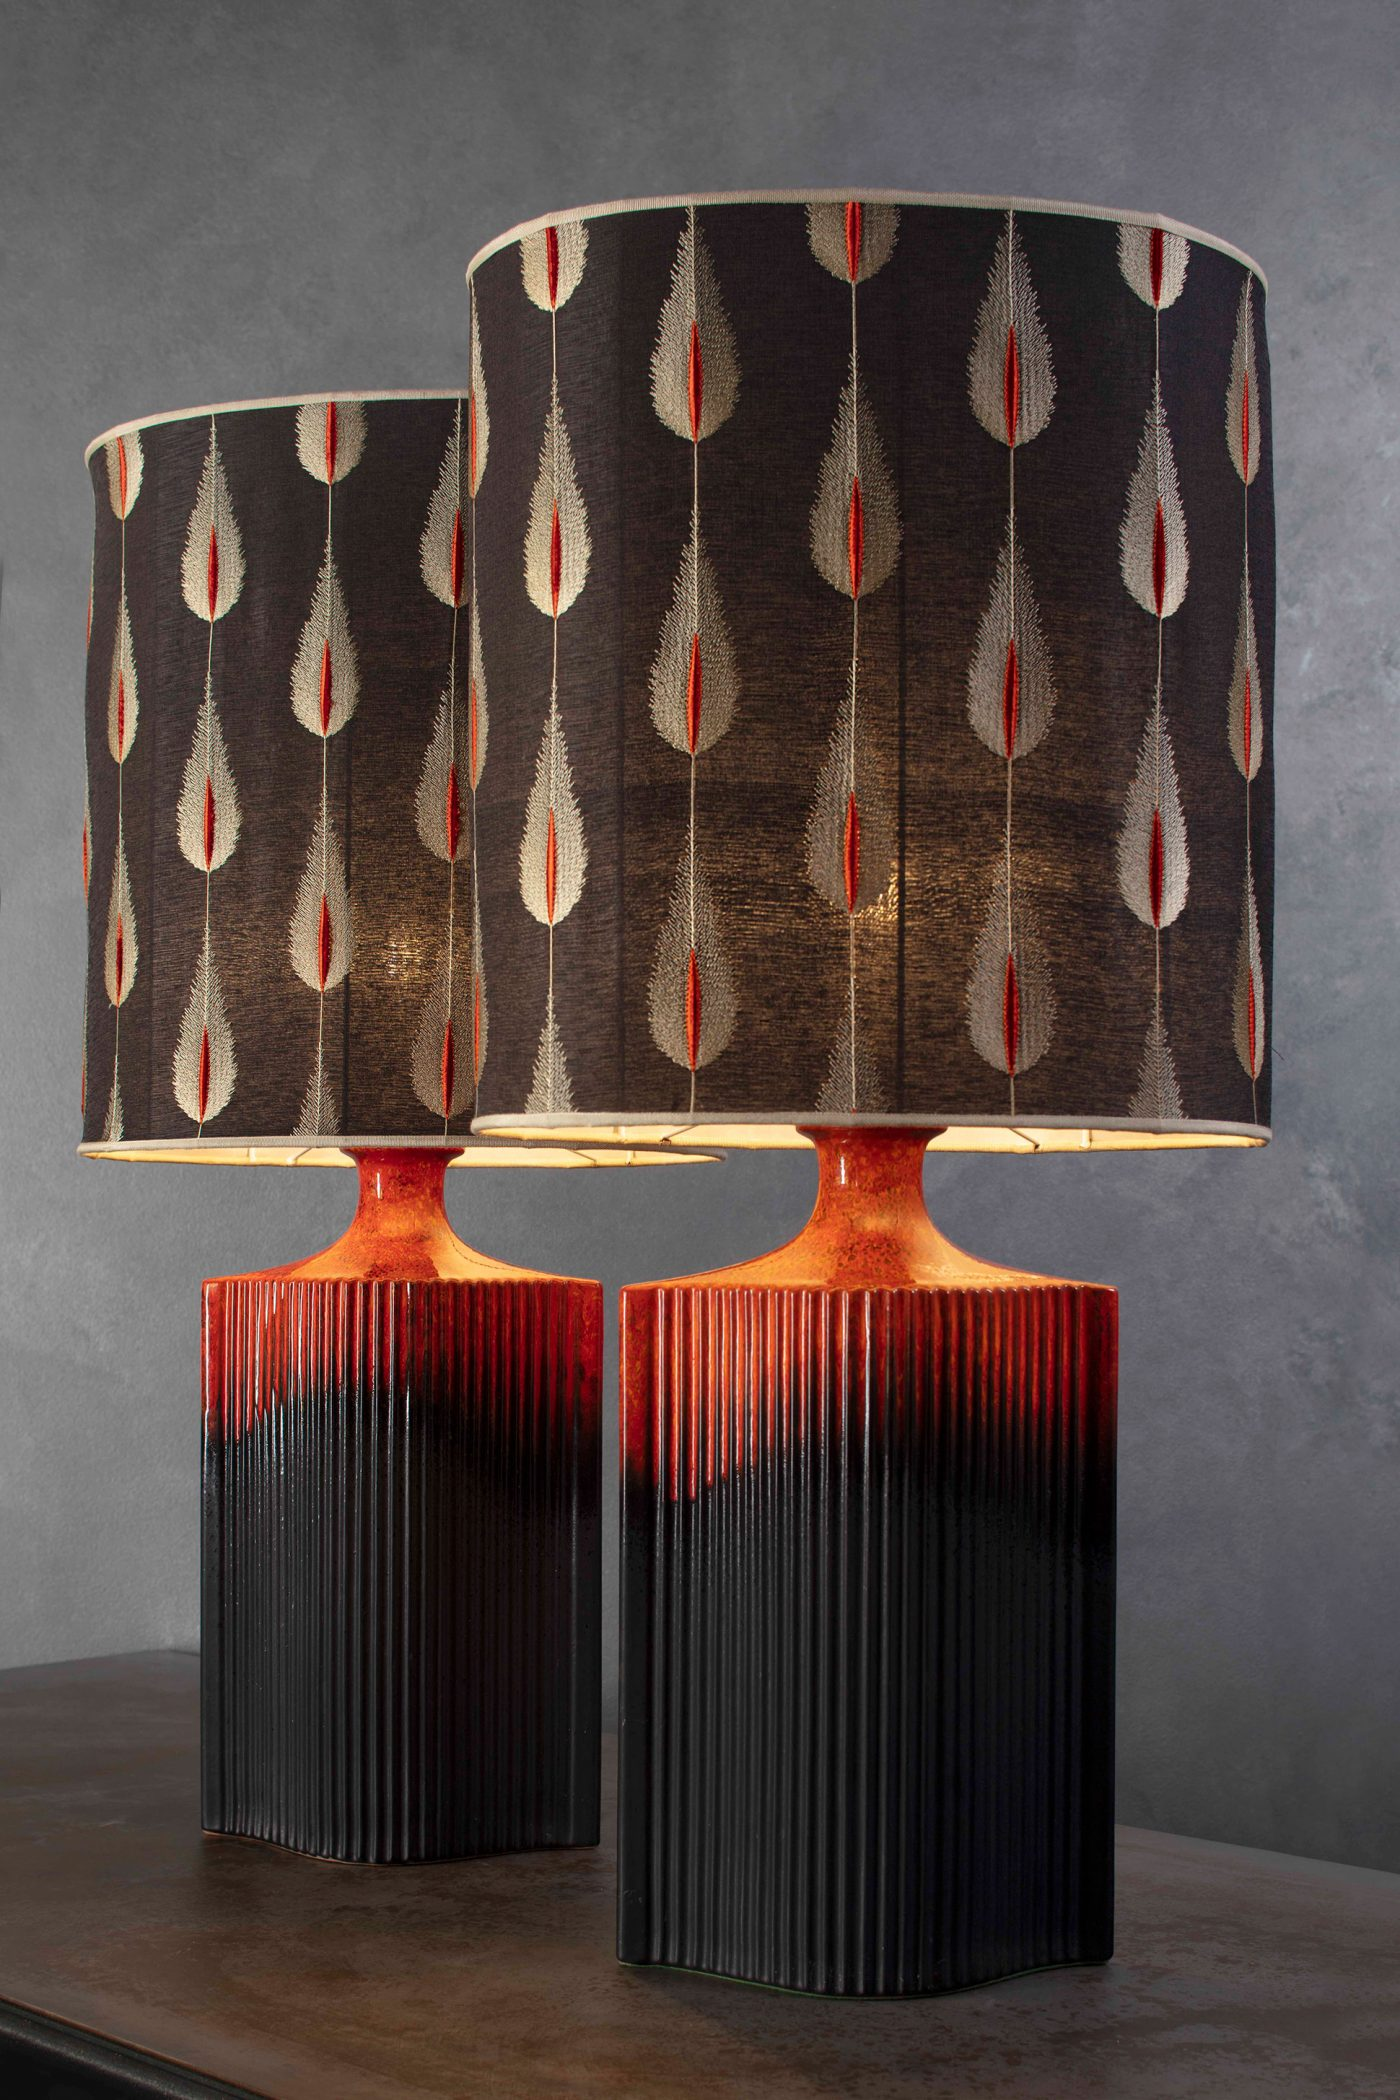 lavalamps-by-harry-clark-feather-lampshades-detail